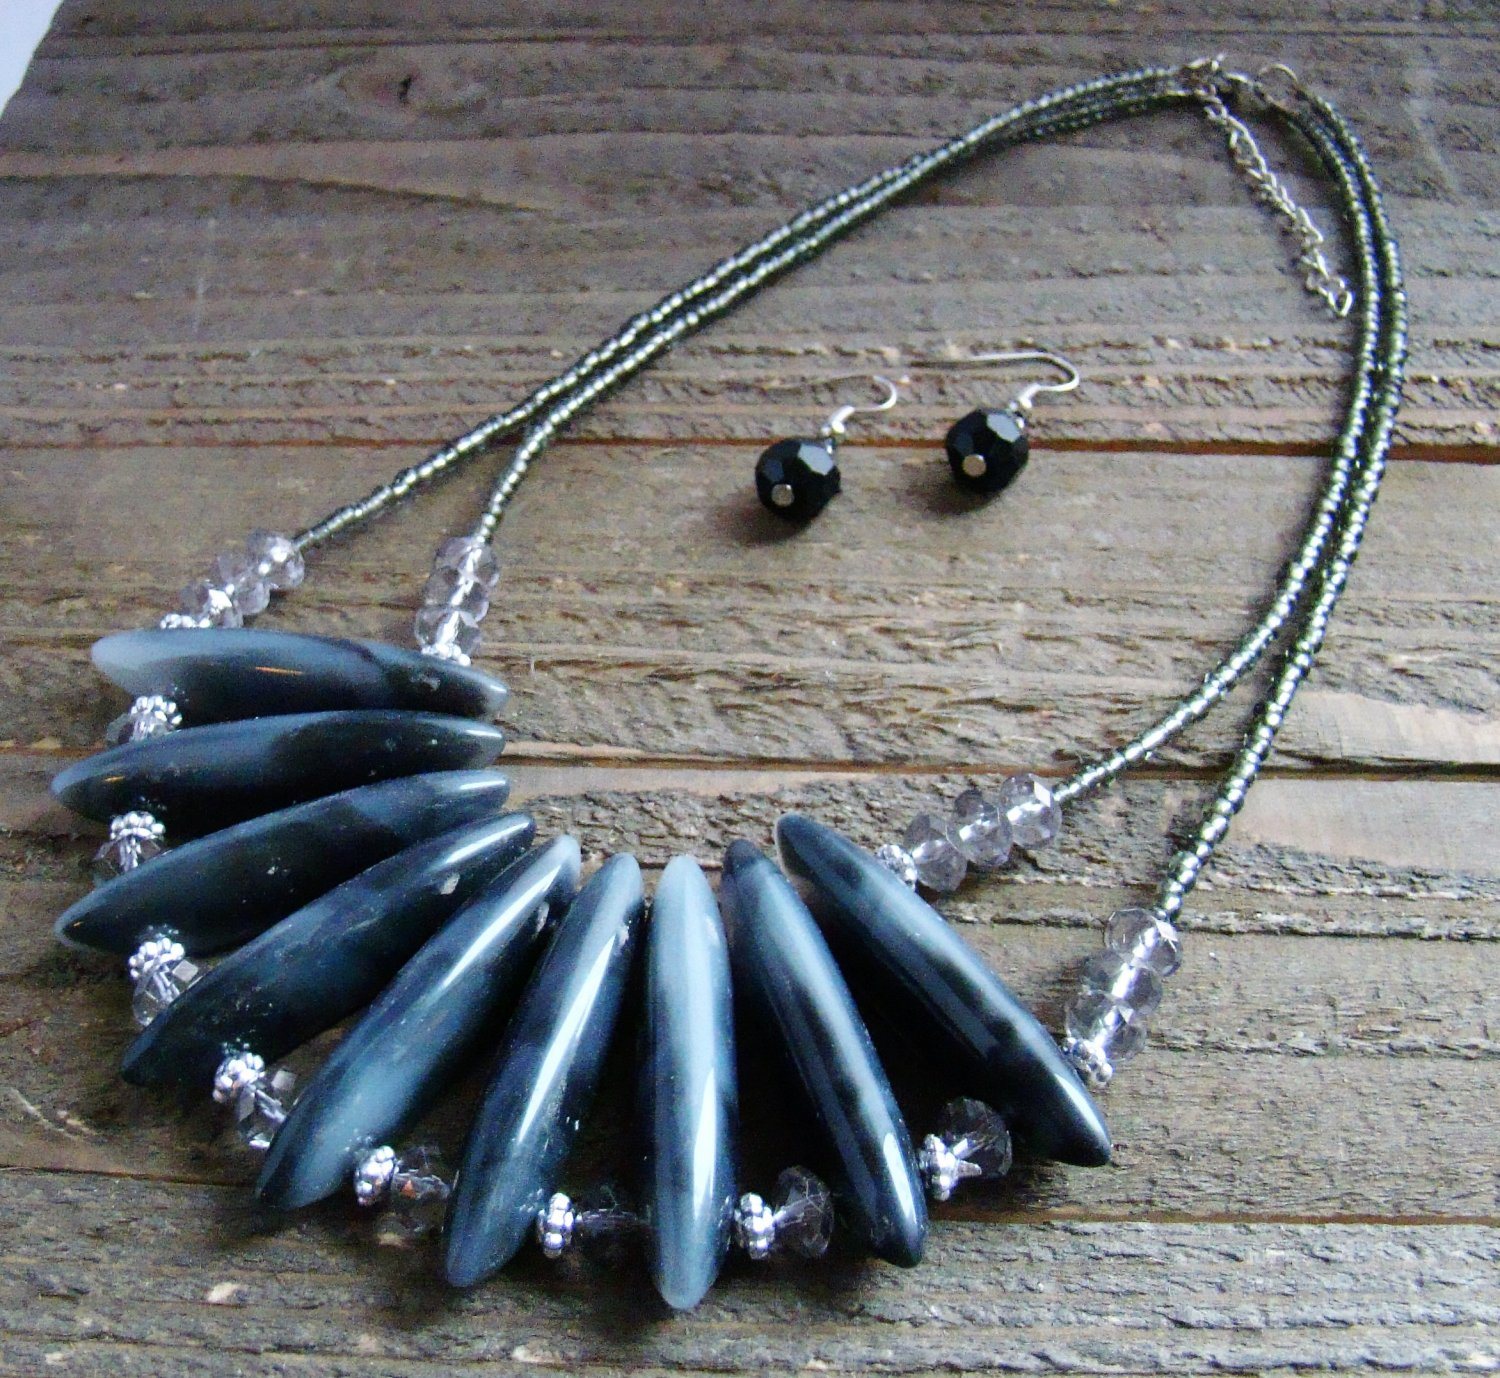 Black Chunky Lucite Bars Double Line Seed Bead Statement Necklace Earrings Jewelry Set